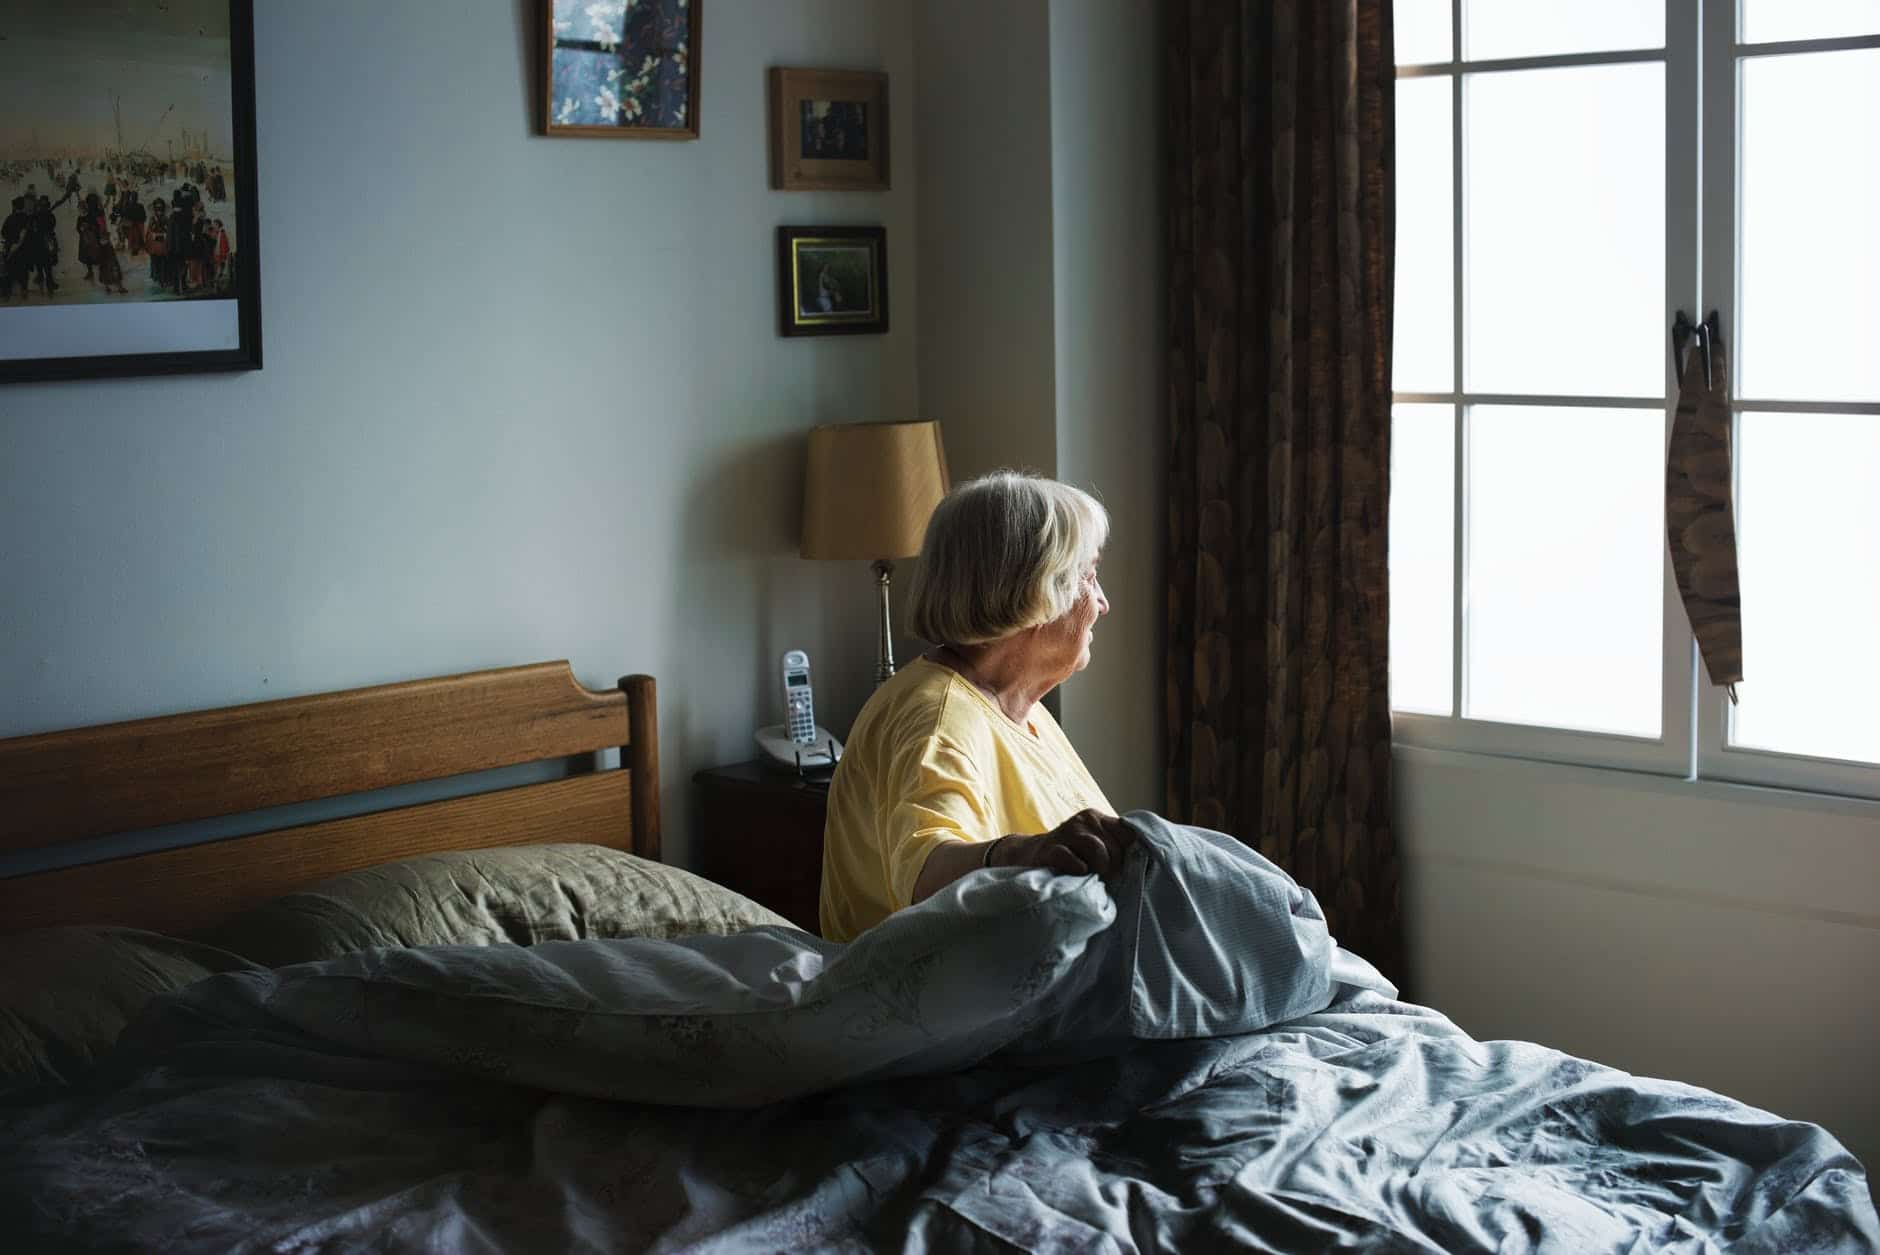 An elderly woman sits in bed, looking out a window.